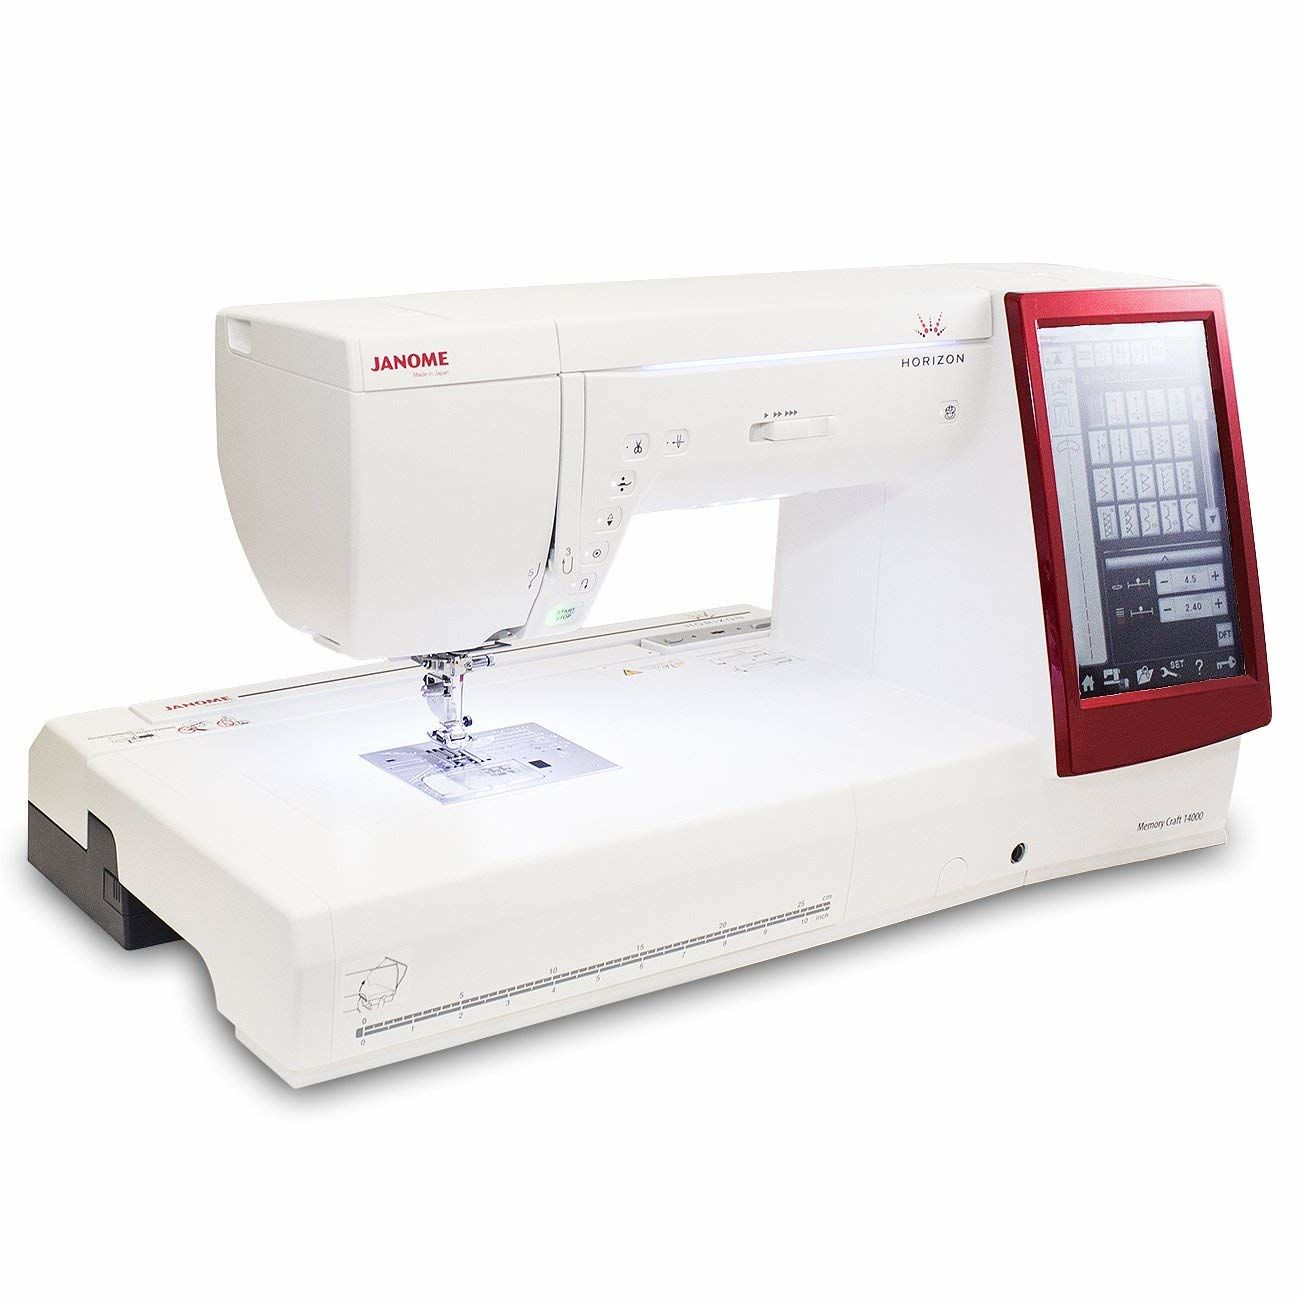 Best Embroidery Machine For Home Business 2019 Comparison